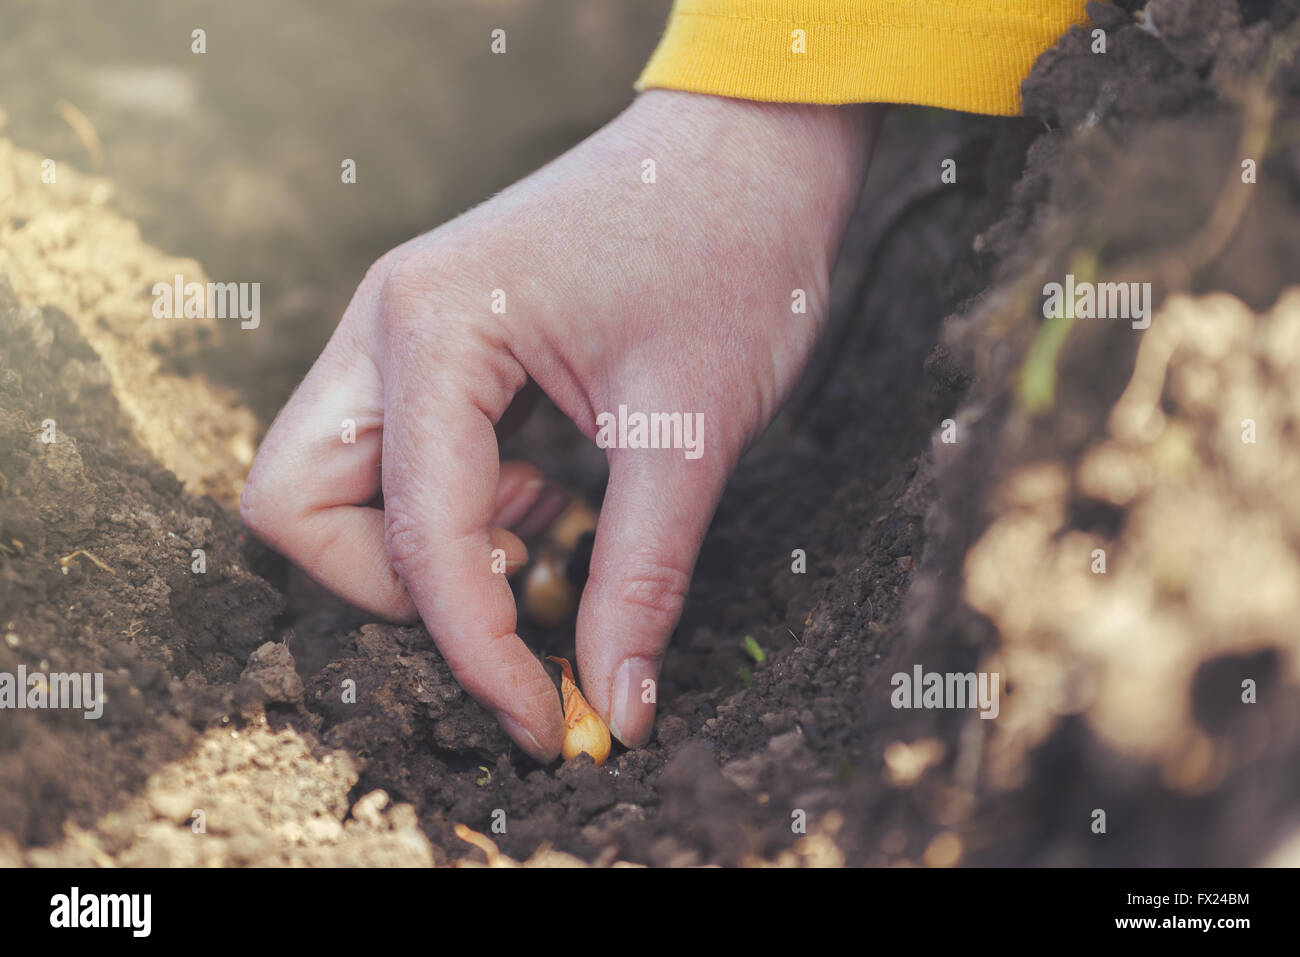 Woman seeding onions in organic vegetable garden, close up of hand planting seeds in arable soil. Stock Photo